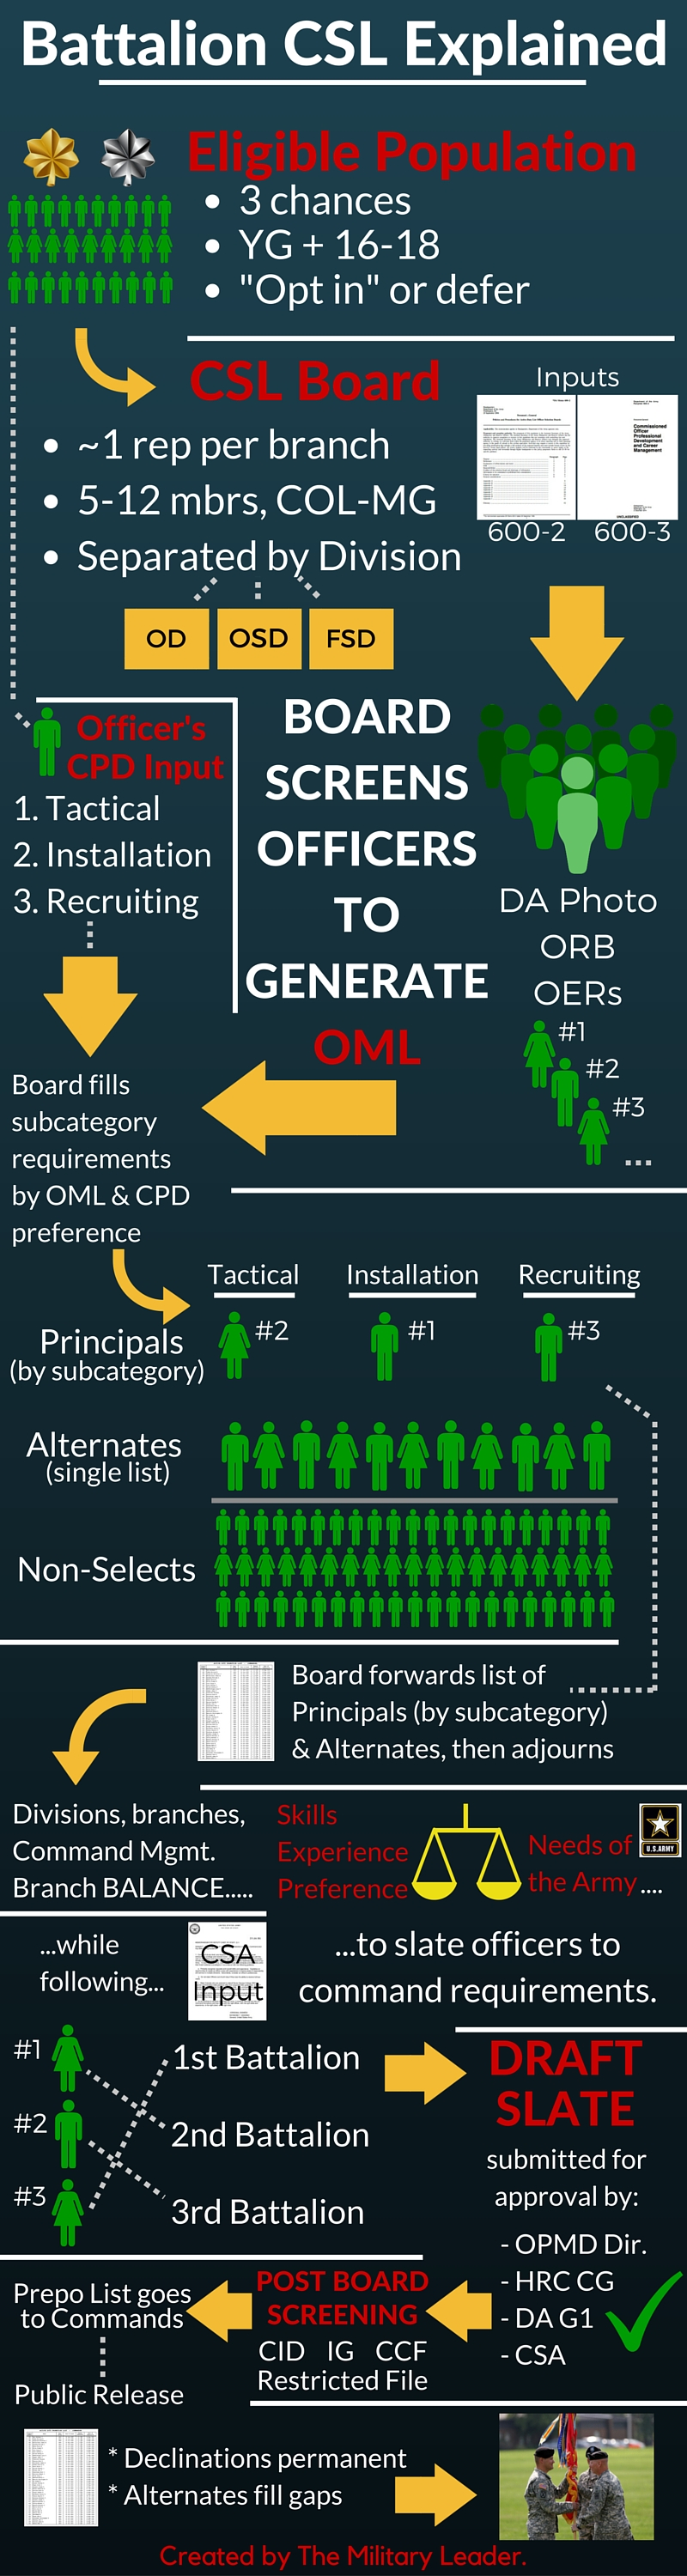 Making Sense of Battalion Command Selection - The Military Leader